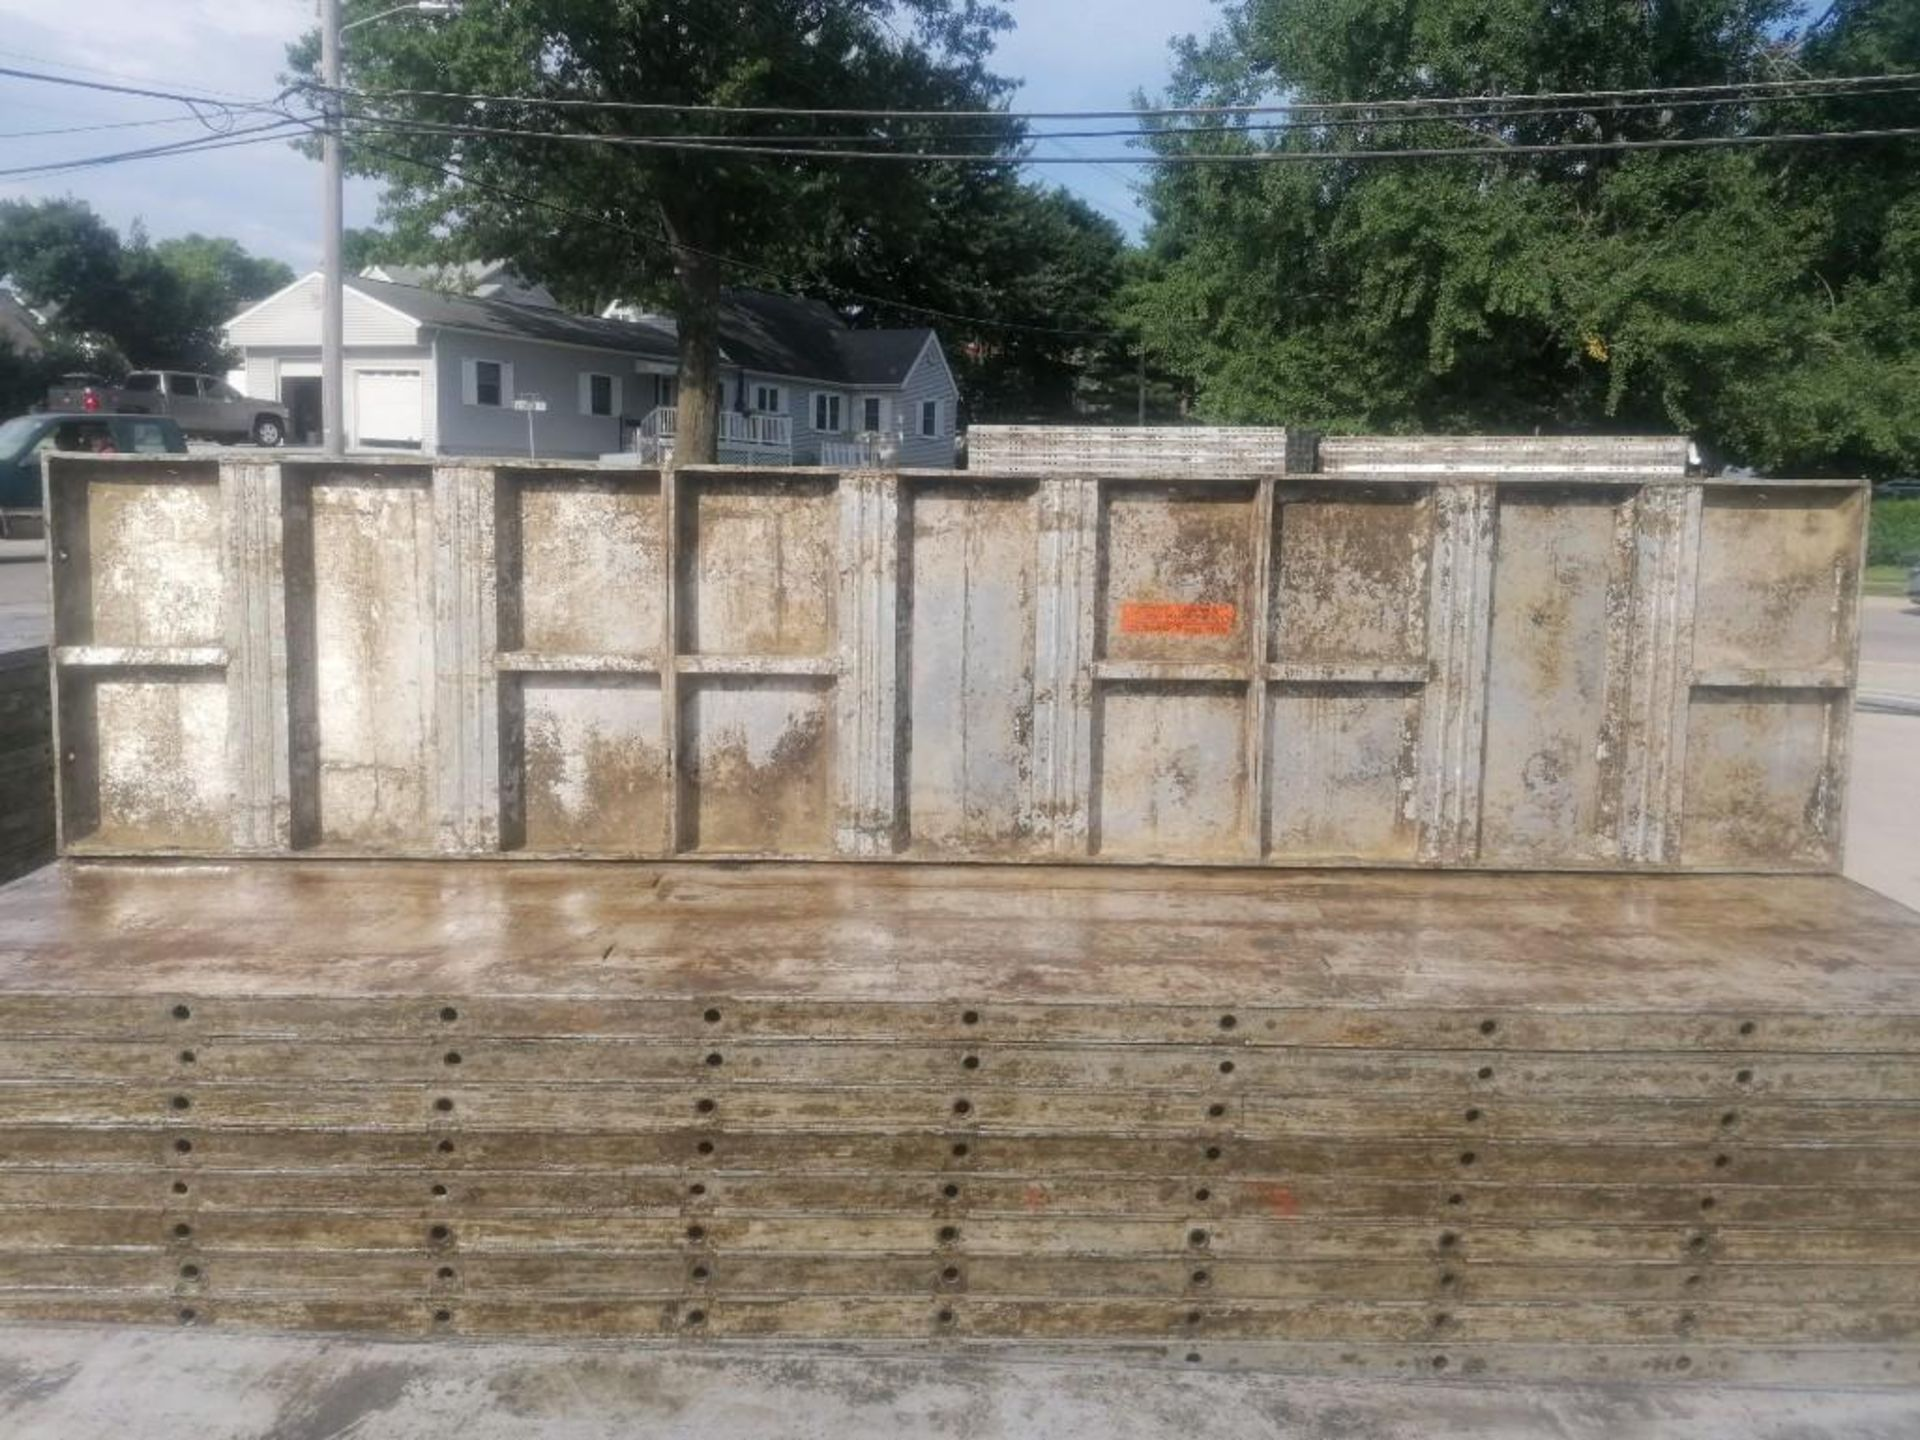 Lot 134 - (30) 2' x 9' Wall-Ties Aluminum Concrete Forms, Laydowns, Smooth 6-12 Hole Pattern. Located at 301 E